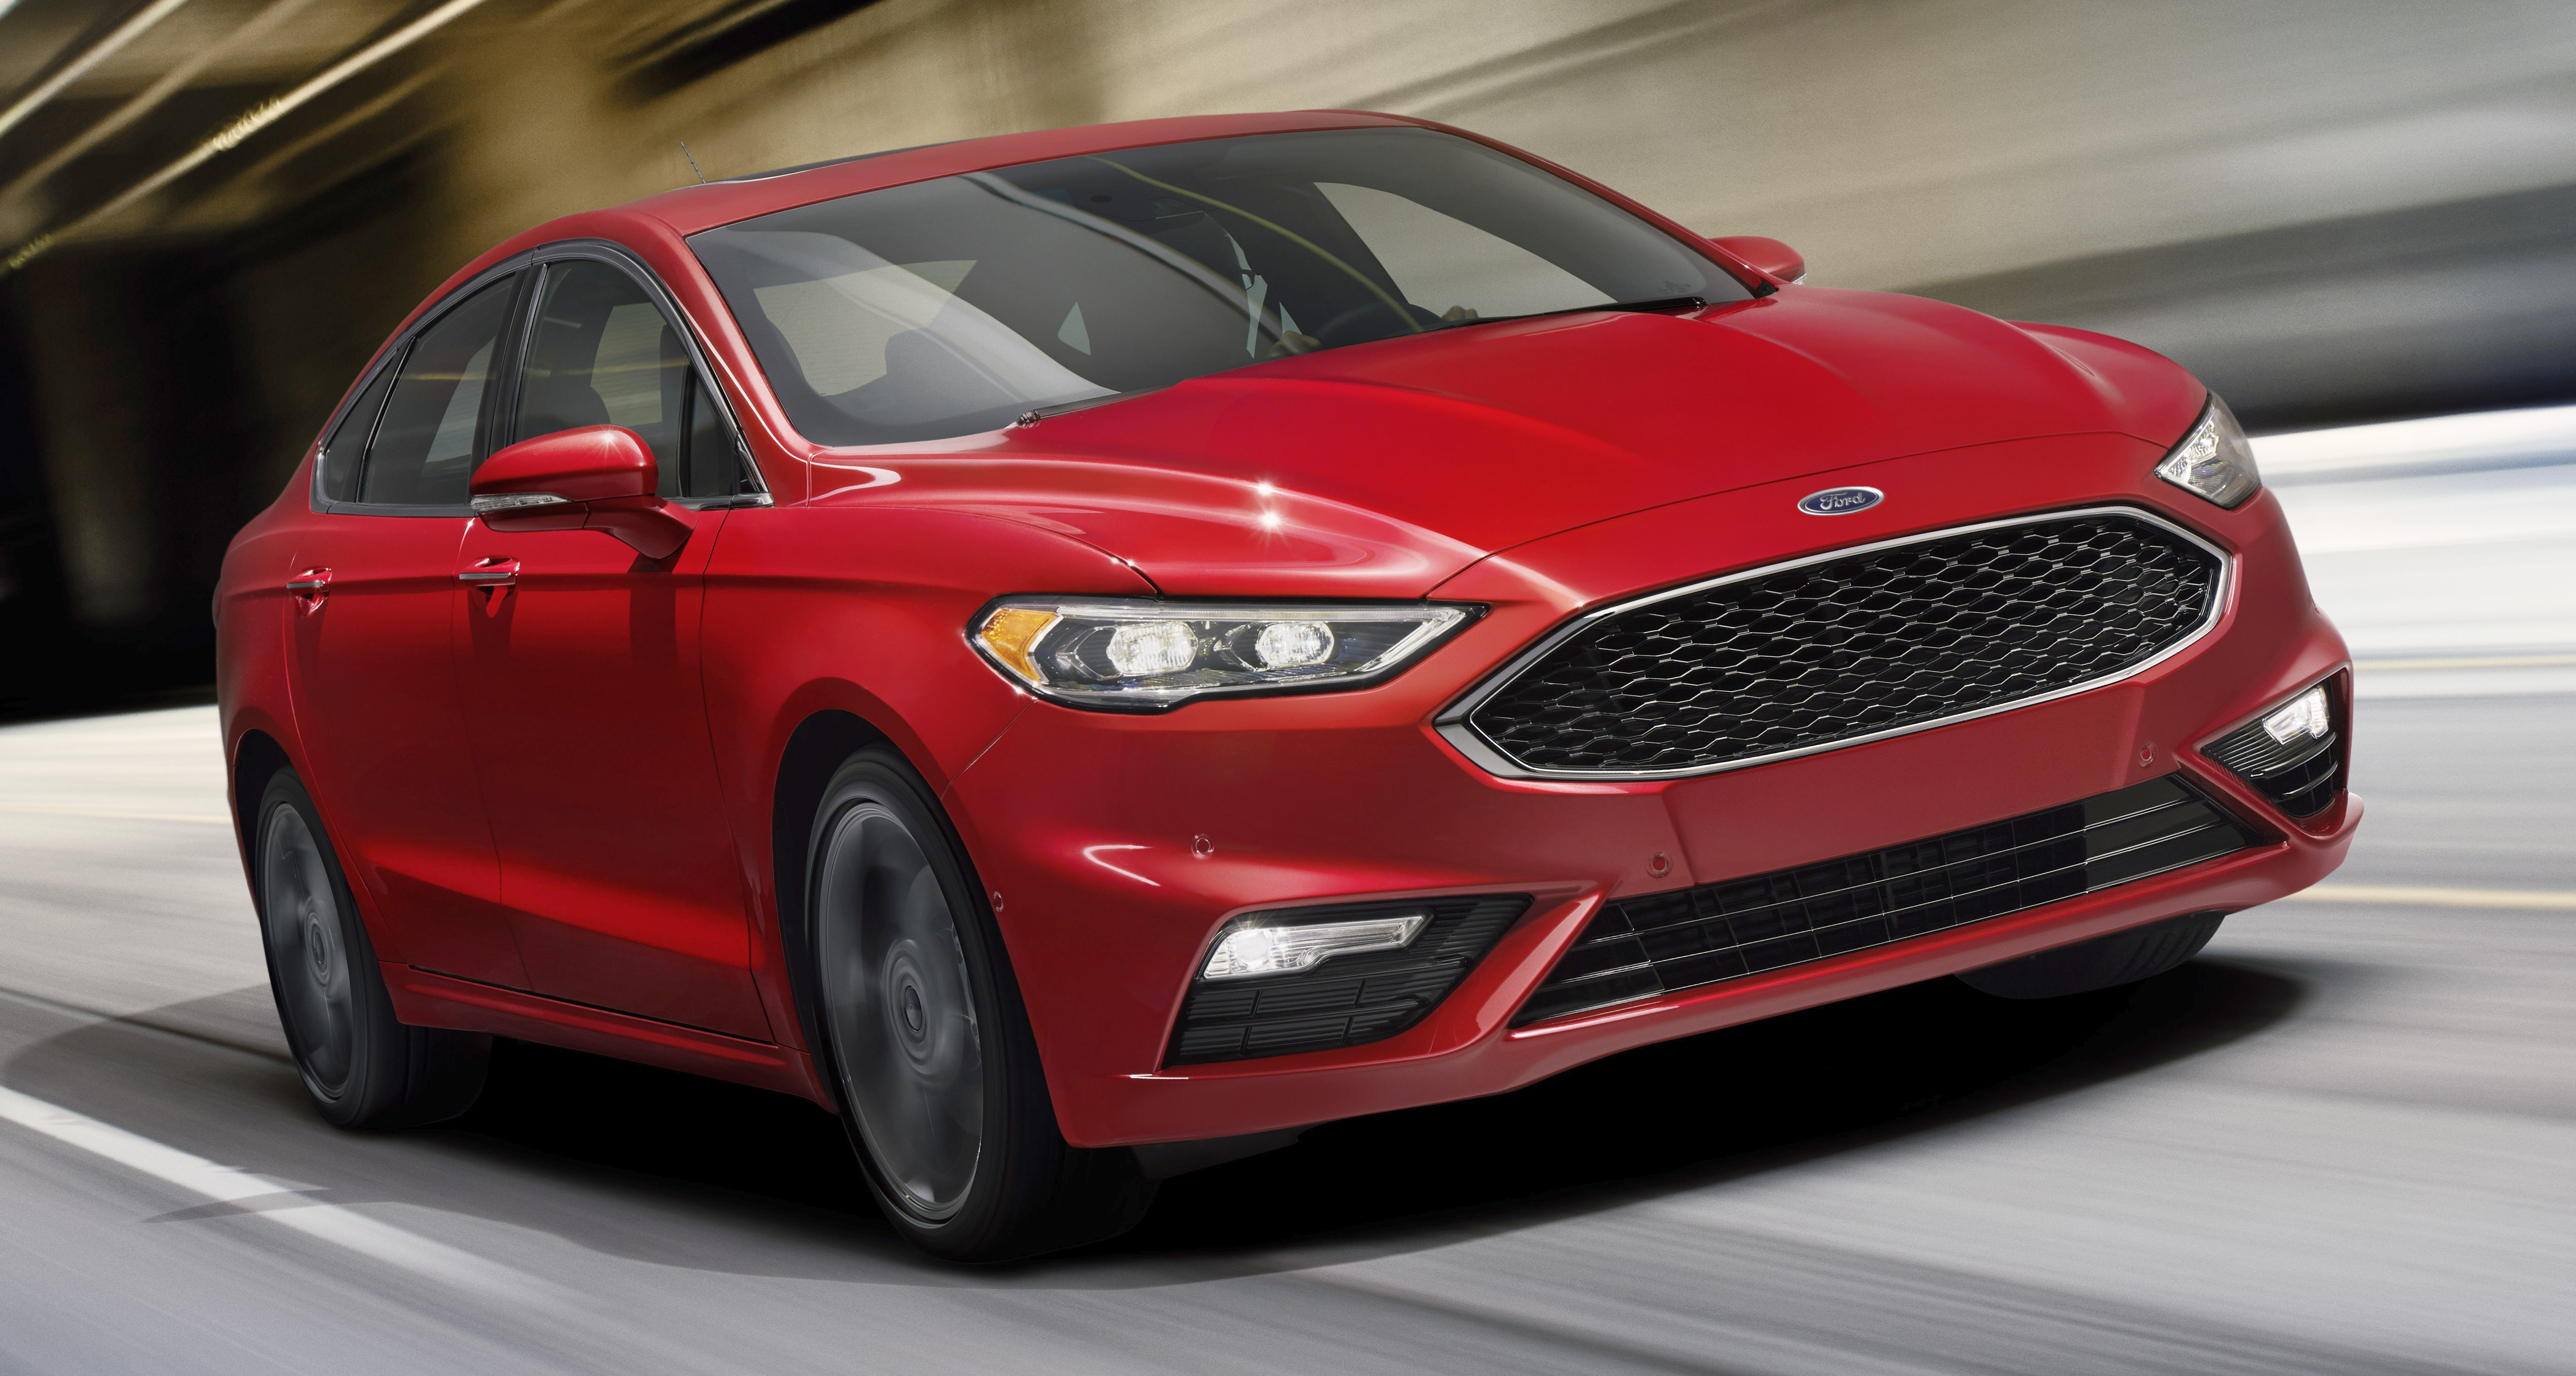 2017 ford fusion facelift debuts 2 7l twin turbo fusion v6 sport and two hybrids lead the new. Black Bedroom Furniture Sets. Home Design Ideas